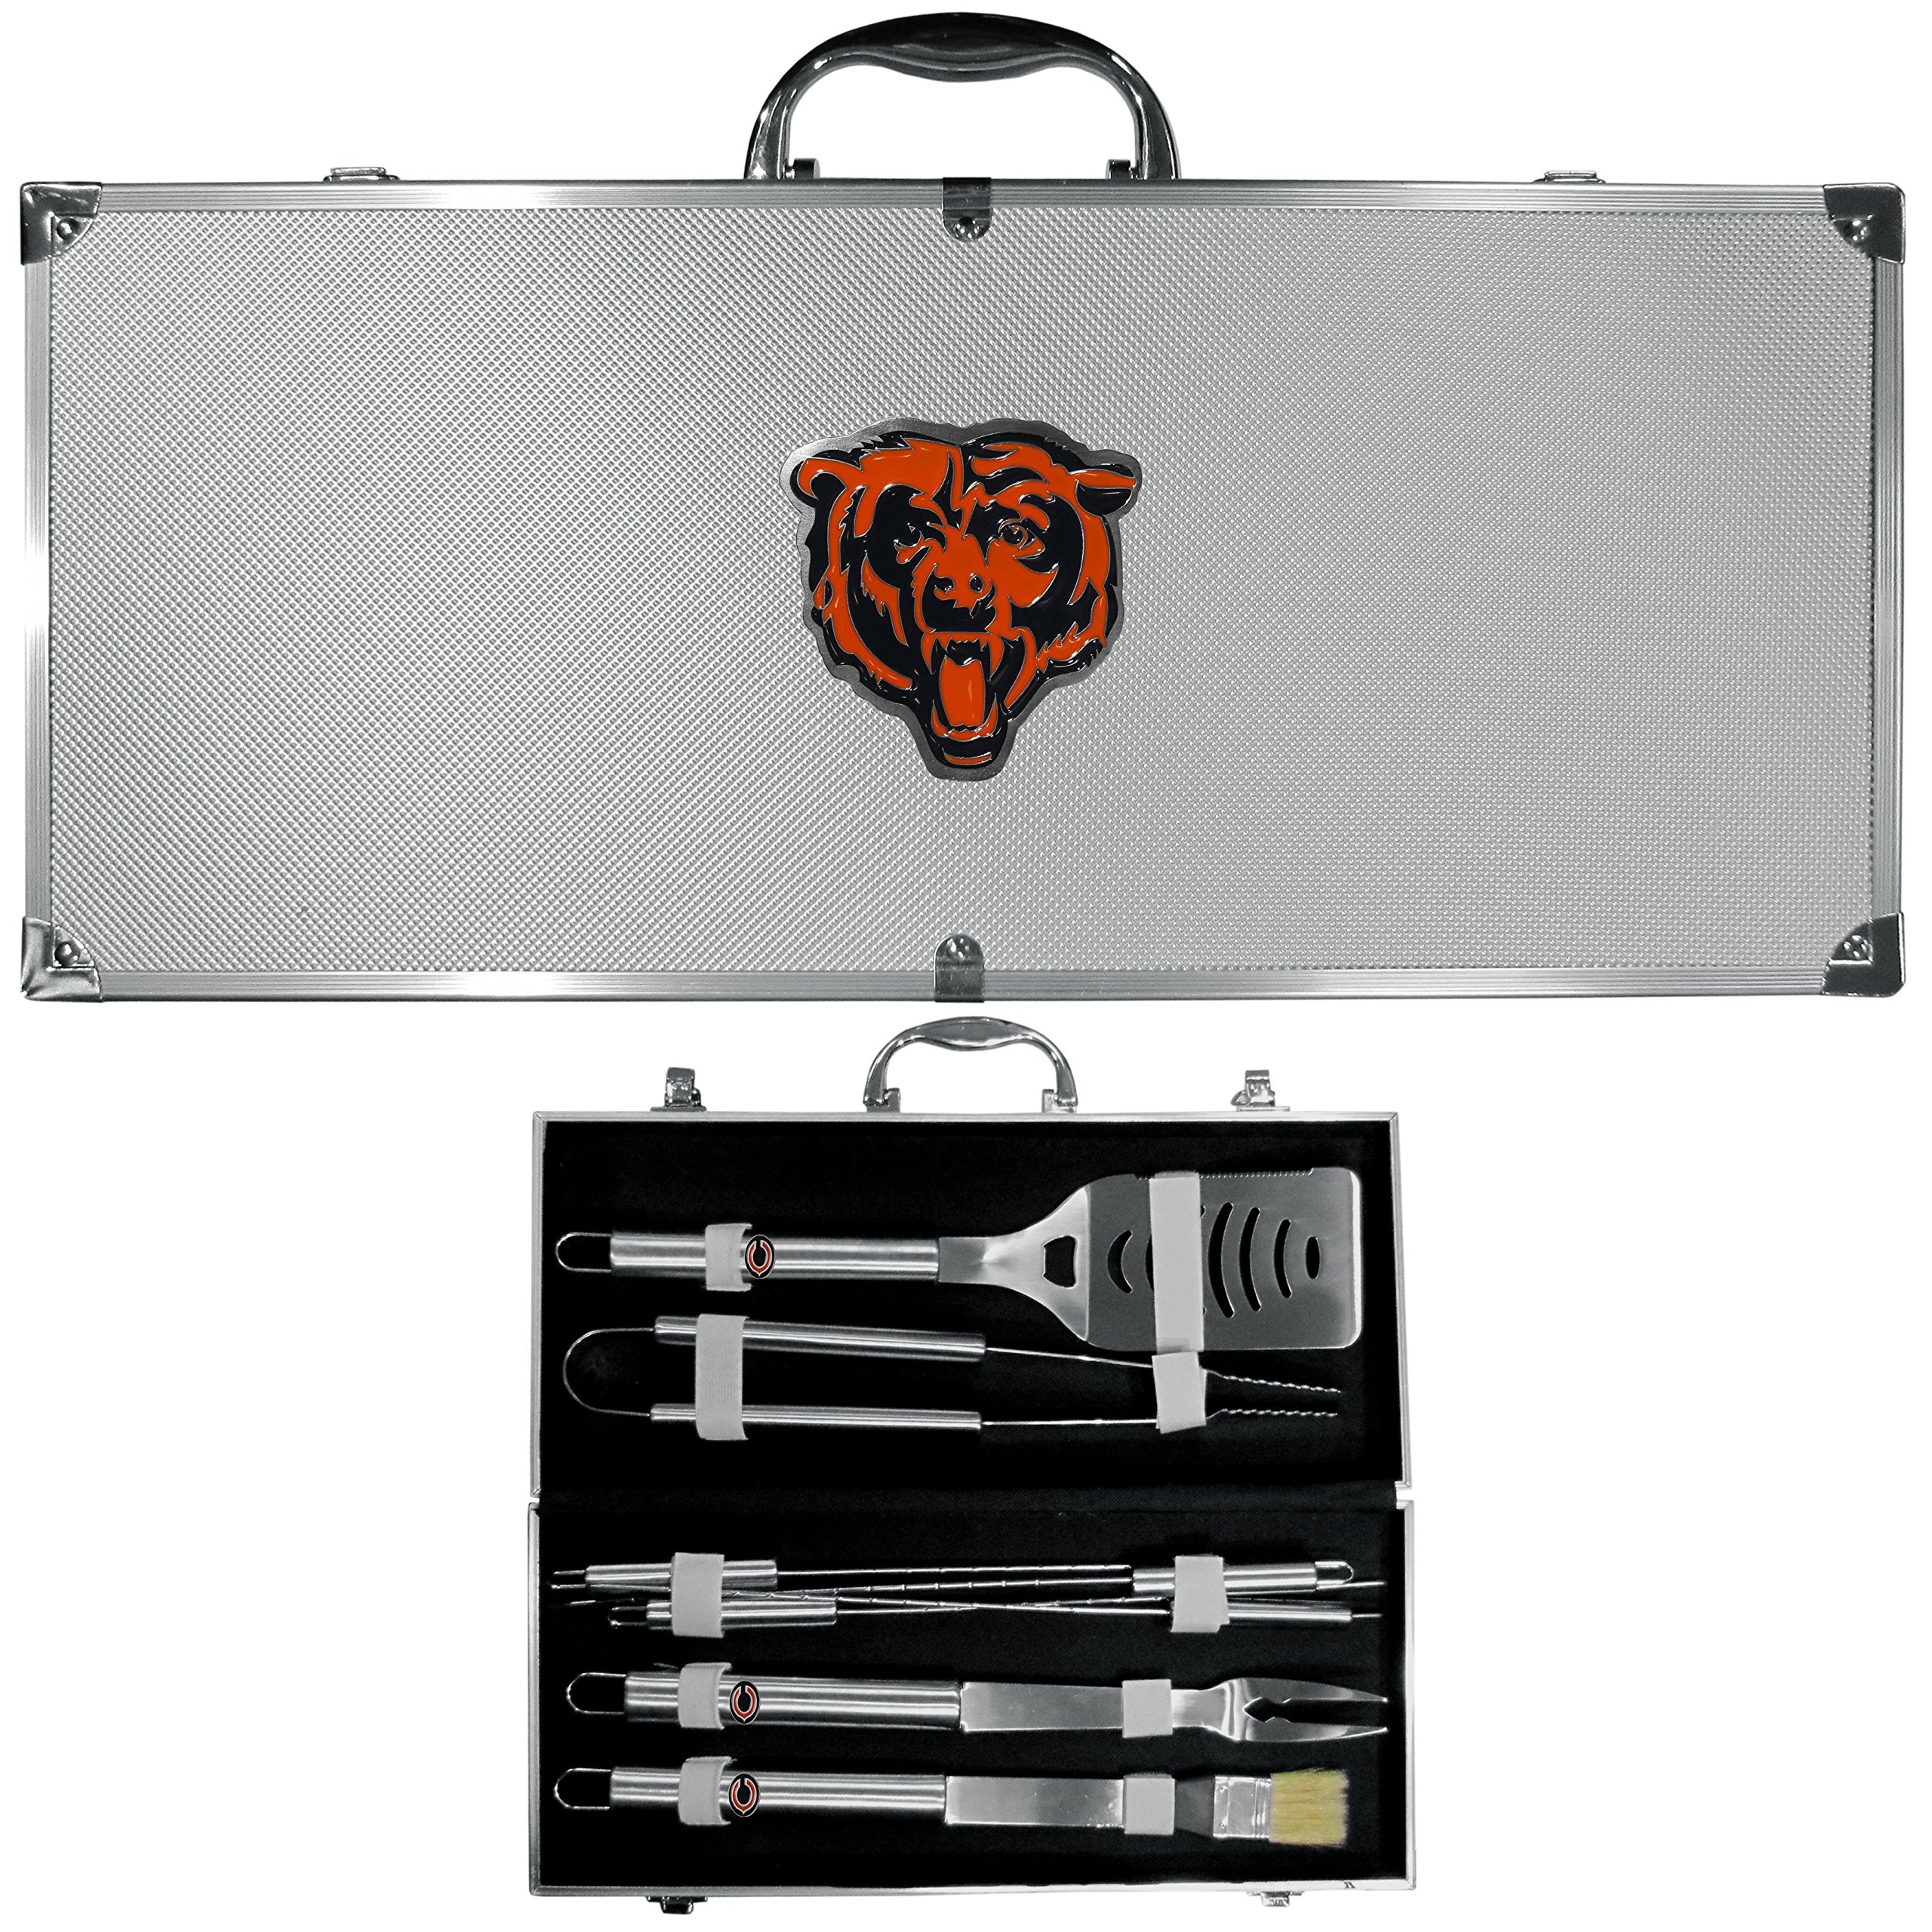 Siskiyou NFL Chicago Bears 8-Piece Barbecue Set w/Case